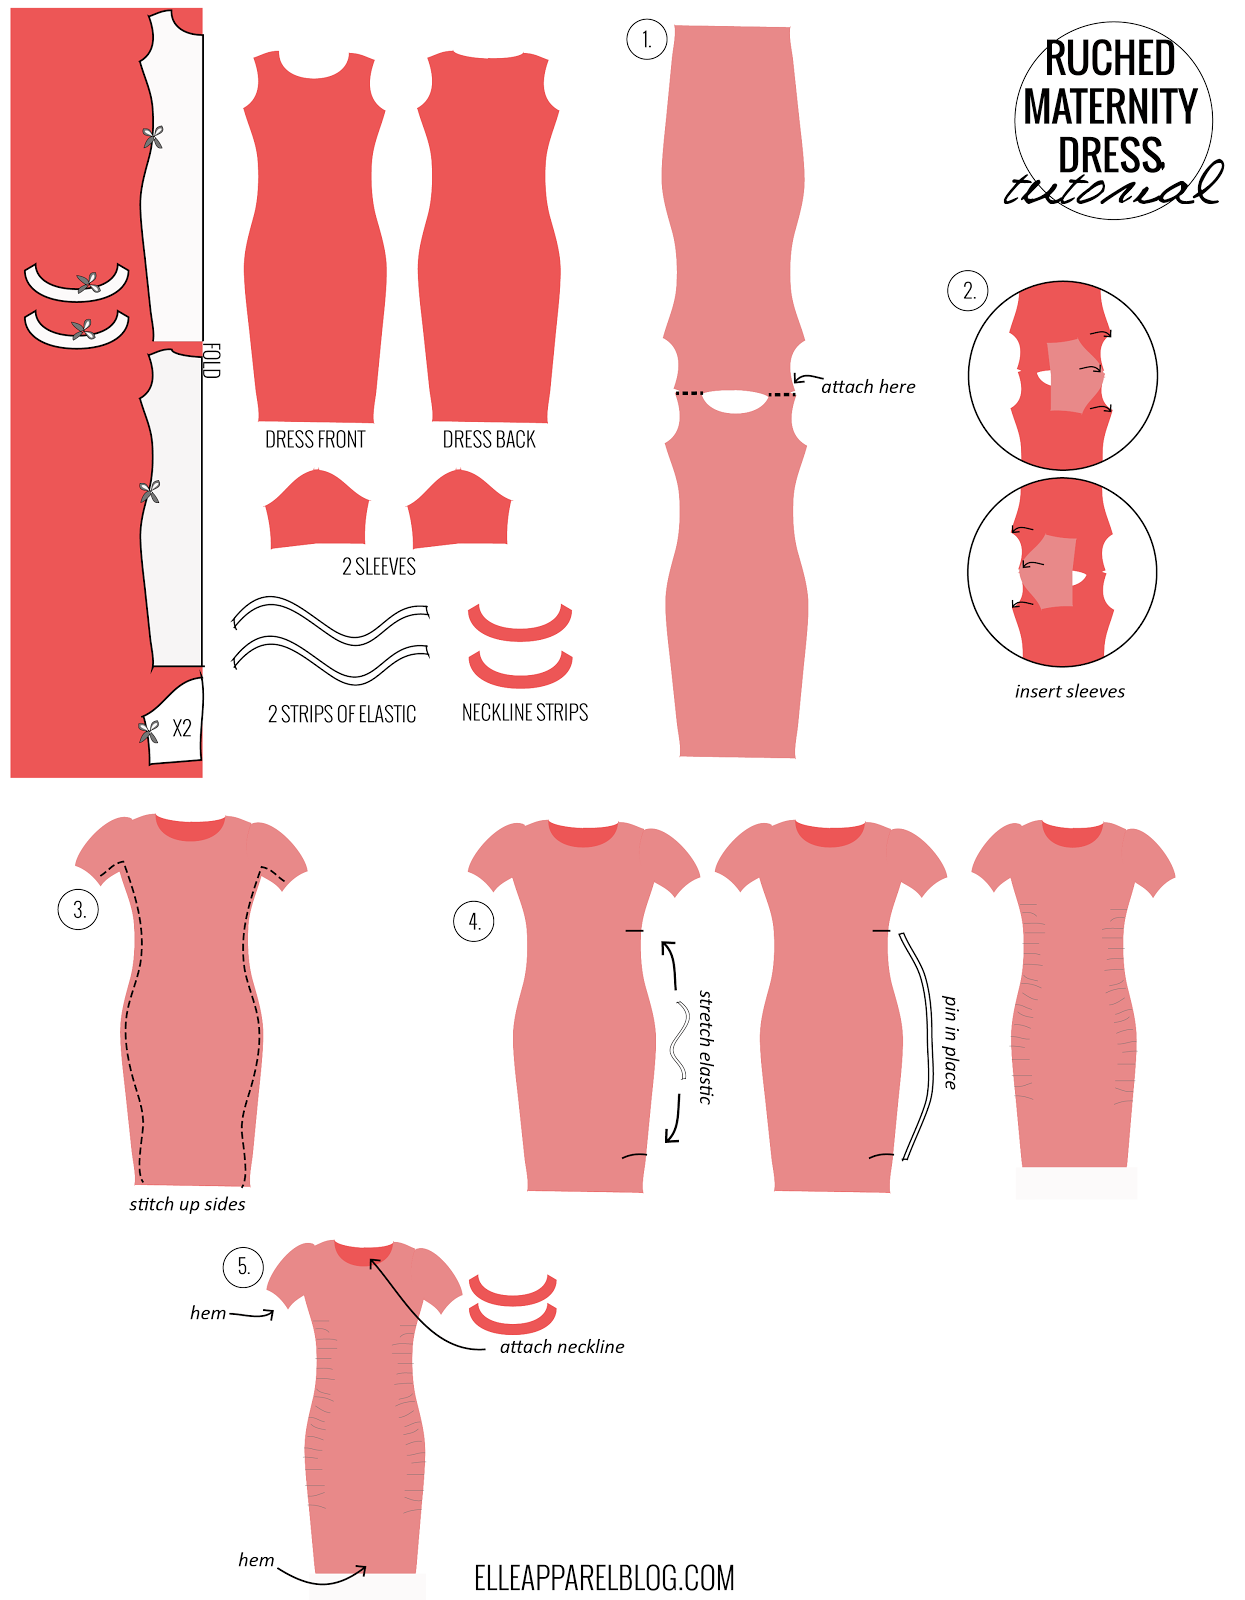 FOURTH OF JULY RUCHED MATERNITY DRESS TUTORIAL | Clothing Tutorials ...